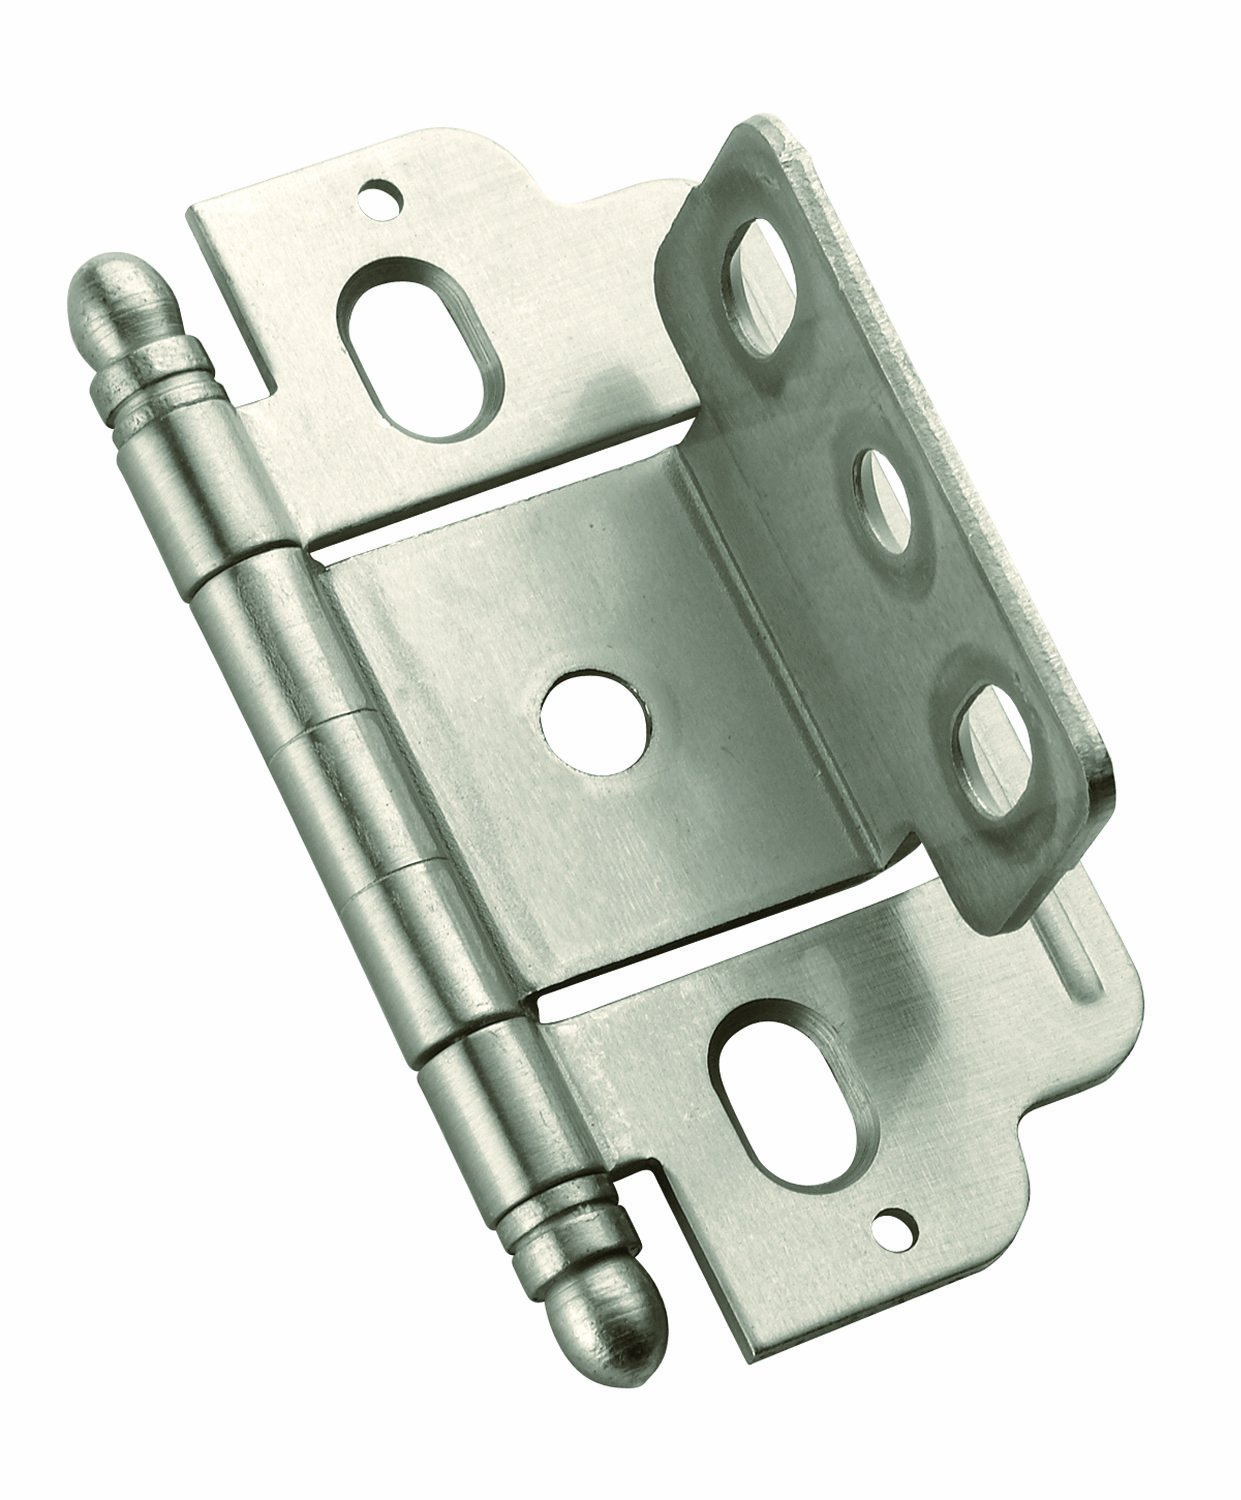 Flush Full Inset Cabinet Hinges Cabinets Matttroy